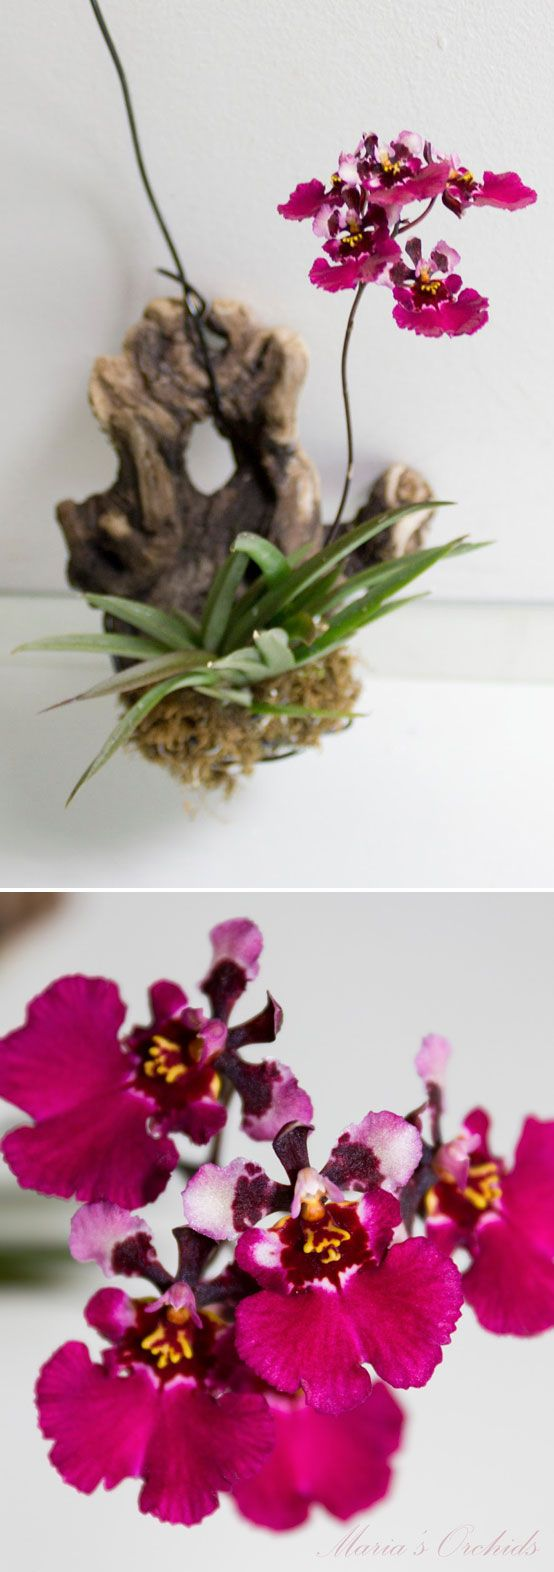 "MOUNTED ORCHIDS :: Tolumnia Red Berry (have this one too) mounted on driftwood with live moss :: 3"" leaf length. Blooms: 1"" wine-colored flowers, unscented. Flower spike maturation: 11 weeks, 5 or so flowers on each spike. 